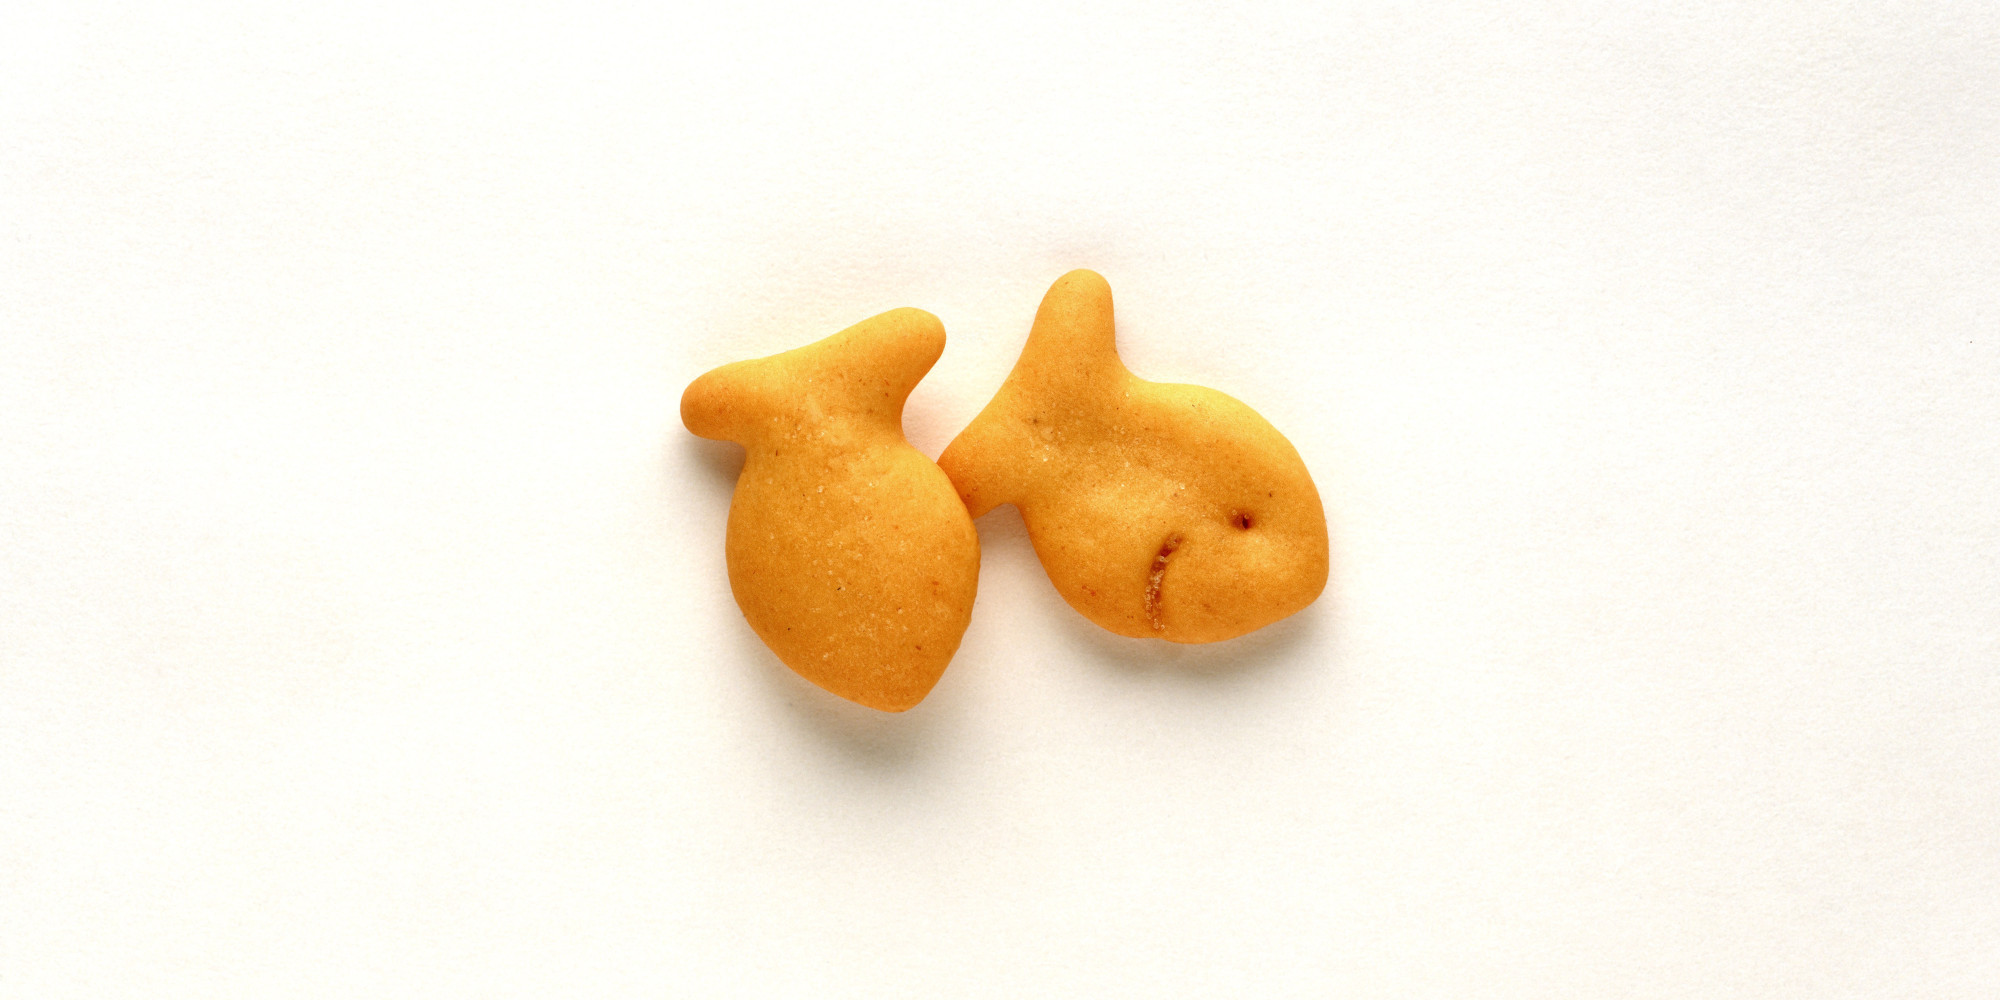 Lessons From a Box of Goldfish (Even the Whole Grain Kind) | Caron ...